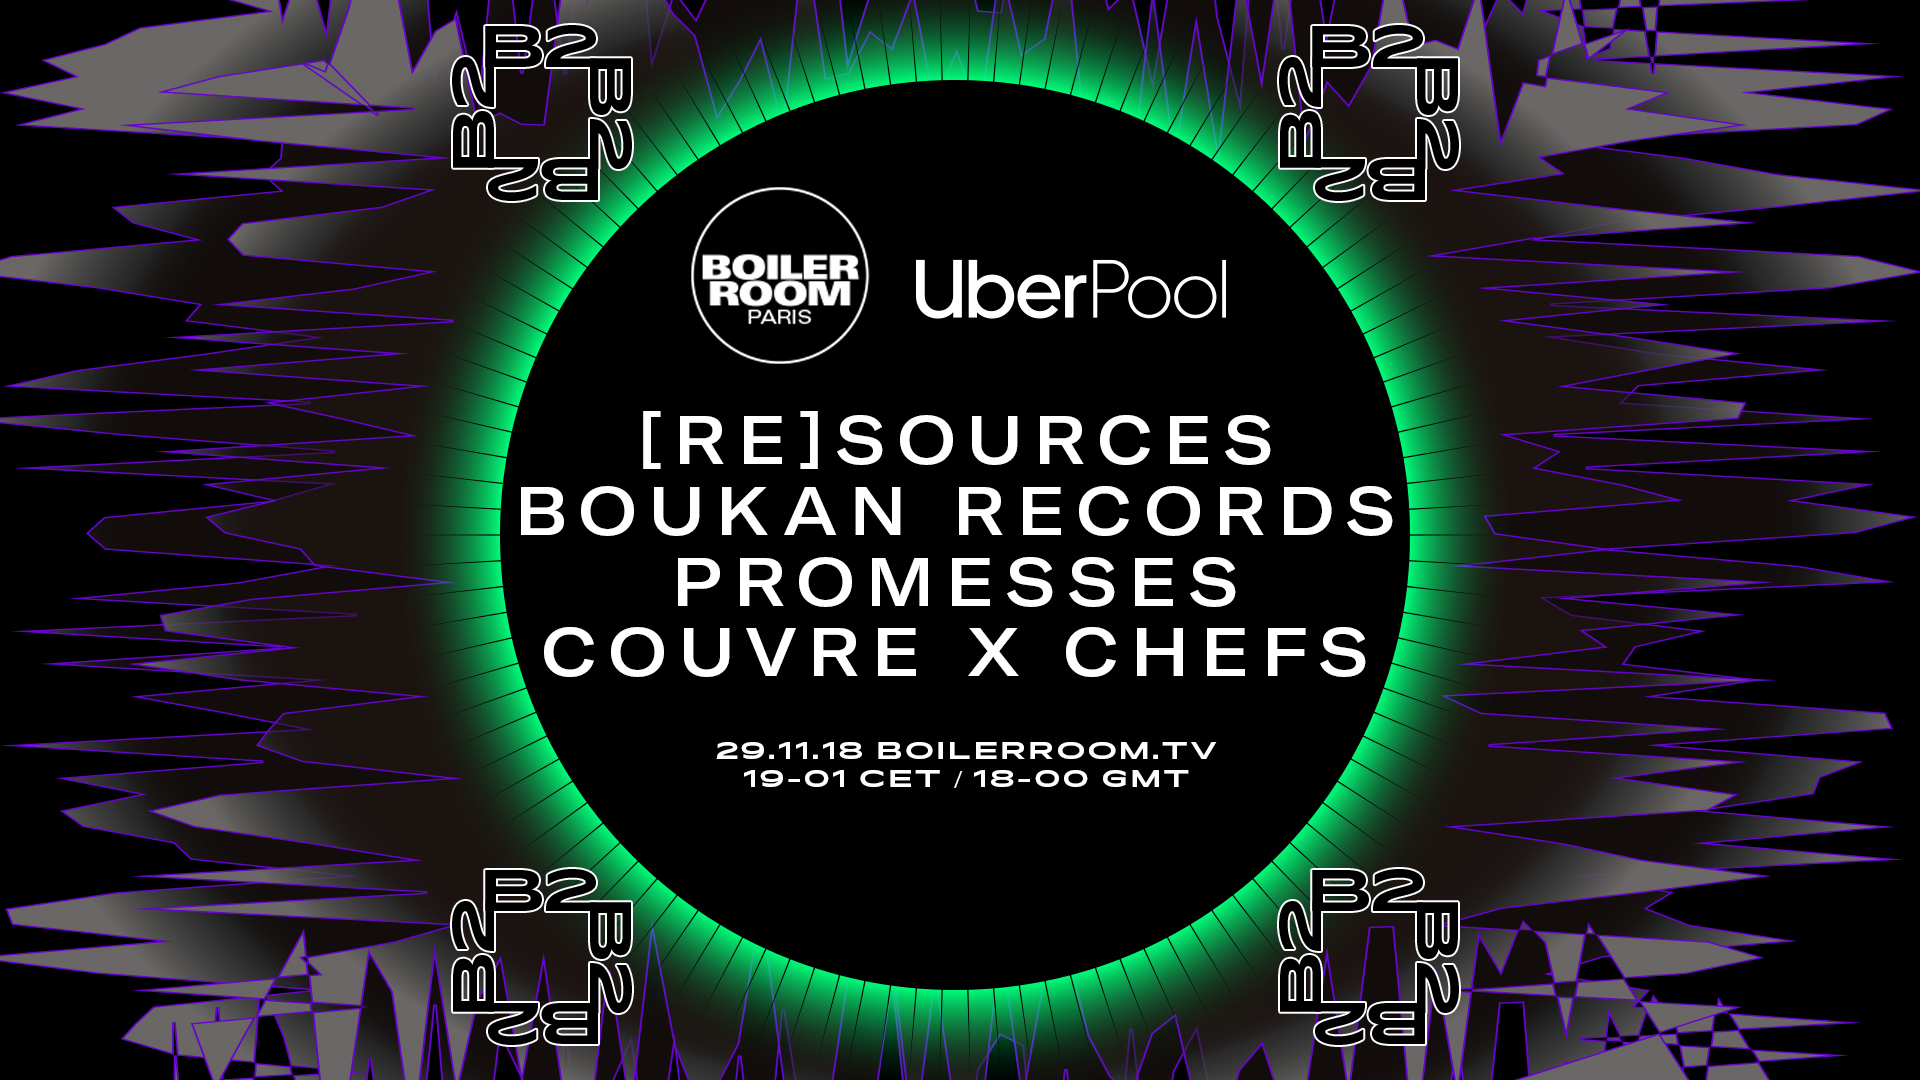 UBER POOL PARIS boiler room couvre x chefs